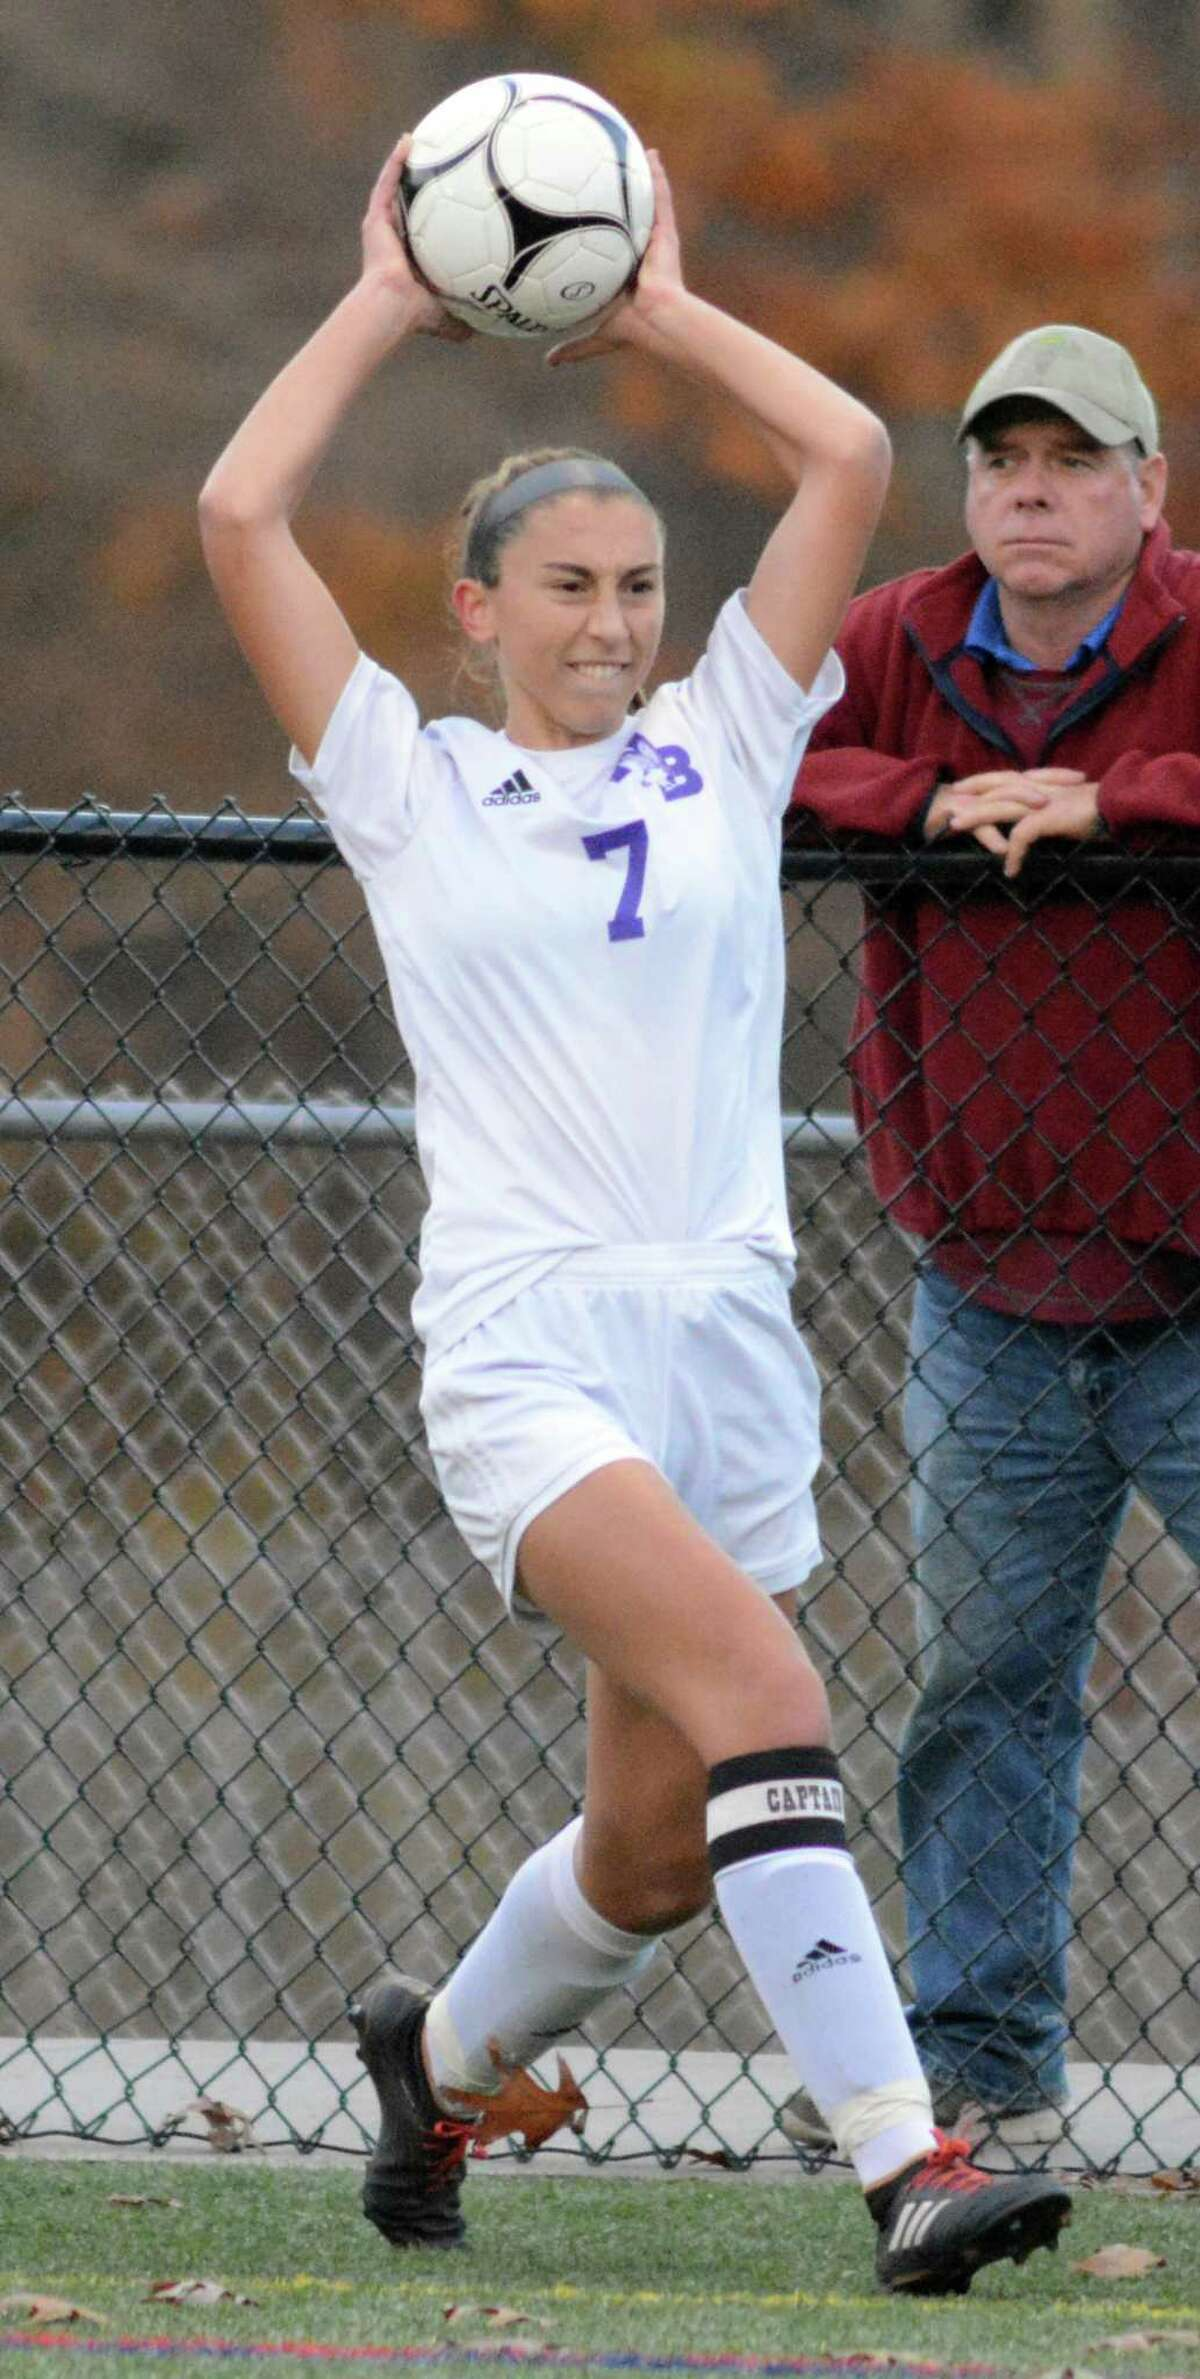 North Branford's Ana Pavic throw the ball in during a Class M girls soccer playoff game against Morgon on Wednesday, Nov. 7, 2018 in Clinton, Conn. Morgan won 2-1.